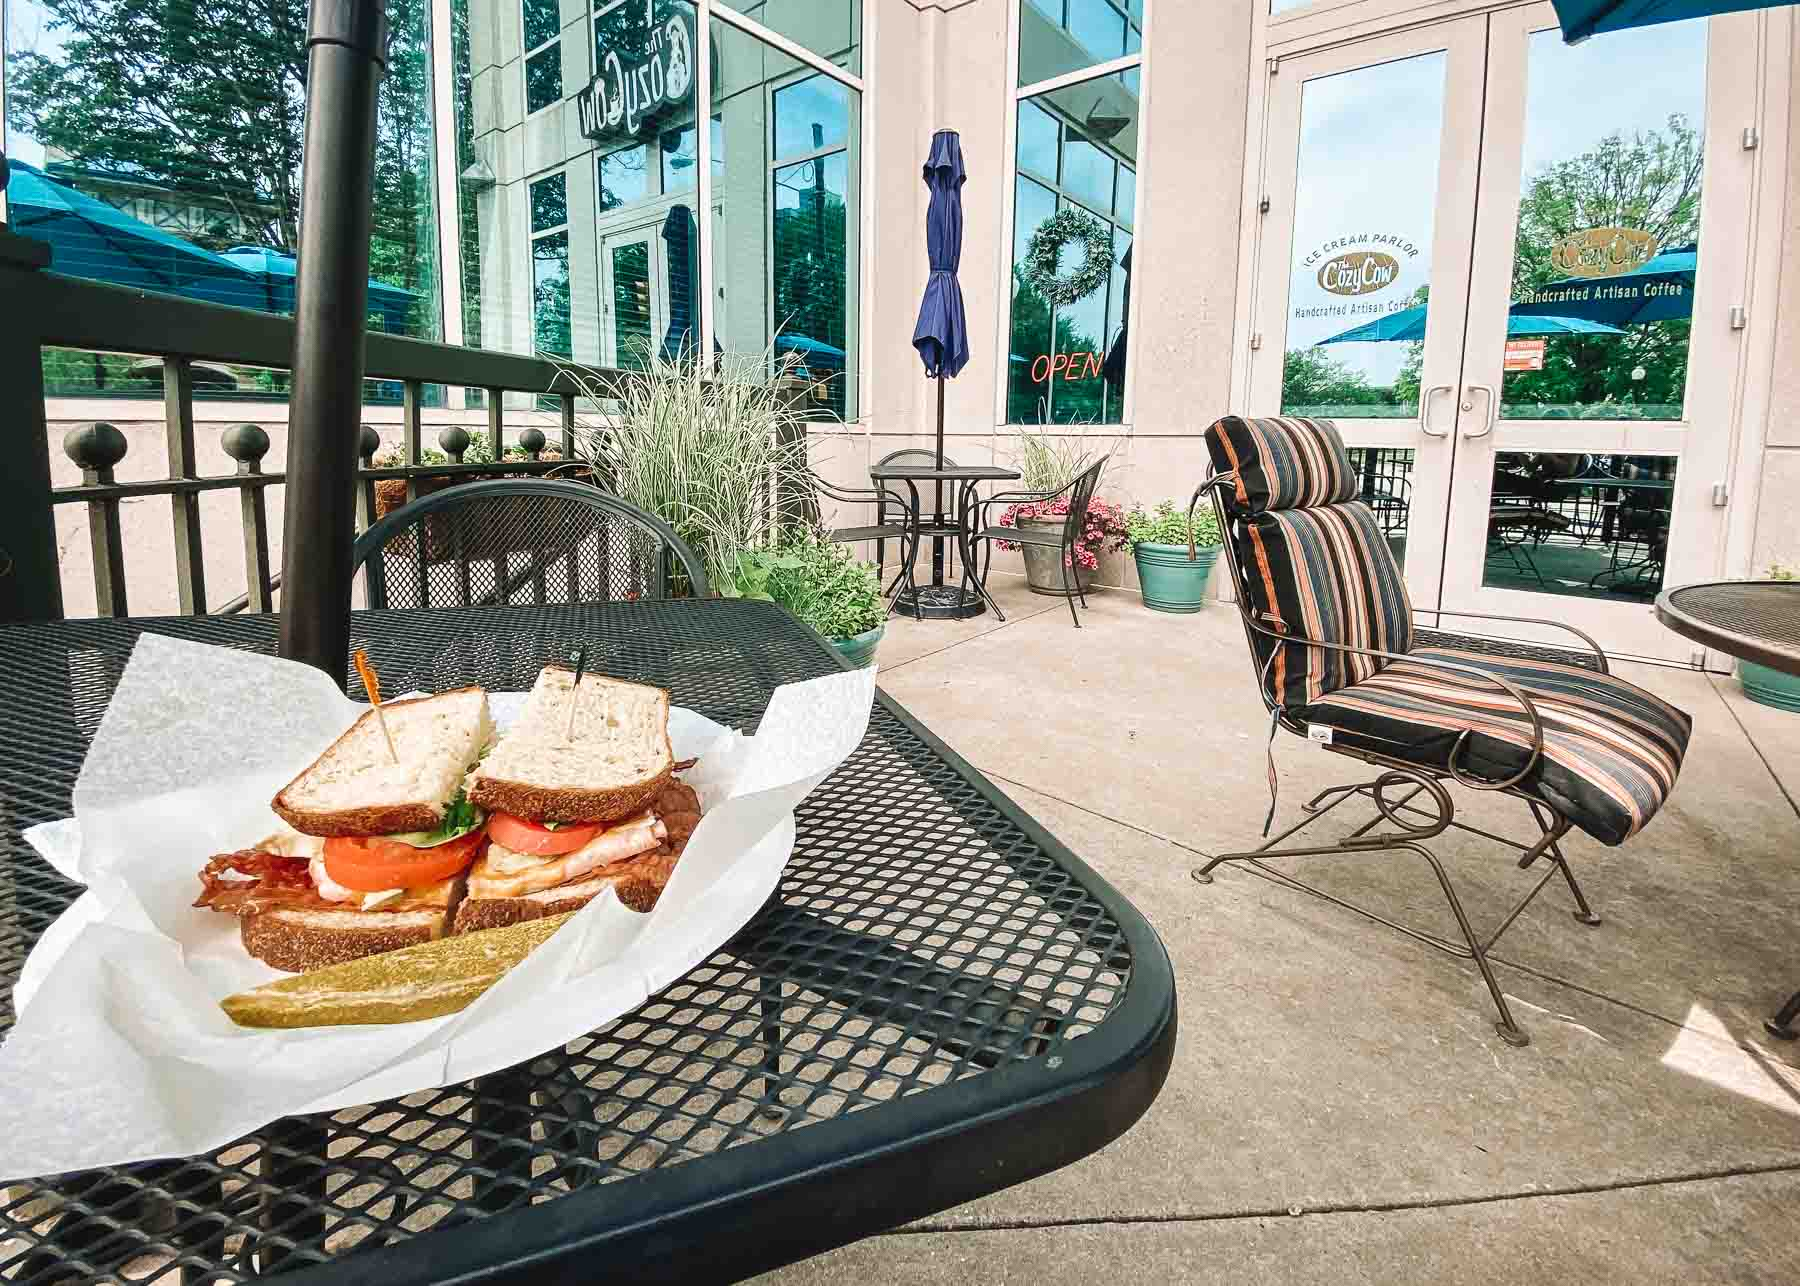 Patio seating outside Cozy Cow in Huntsville, Alabama. There is a sandwich on the left with a pickle next to it.